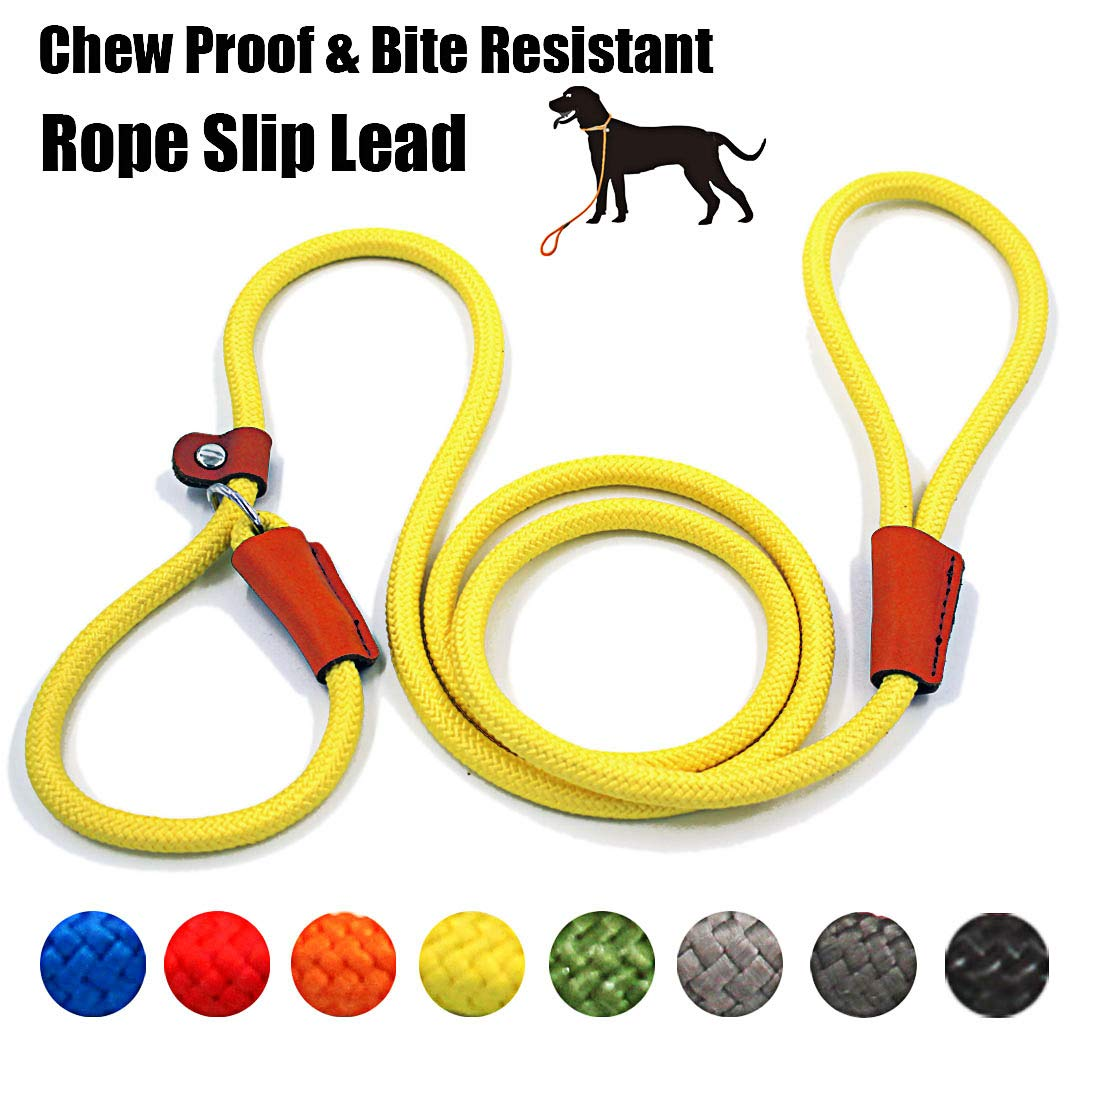 lynxking Braided Rope Dog Leash Strong Heavy Duty Bite Resistant Dog Rope Slip Leads UHMWPE Chew Resistant Training Lead Leashes Medium Large Dogs (3/8'' x5', Yellow) by lynxking (Image #1)